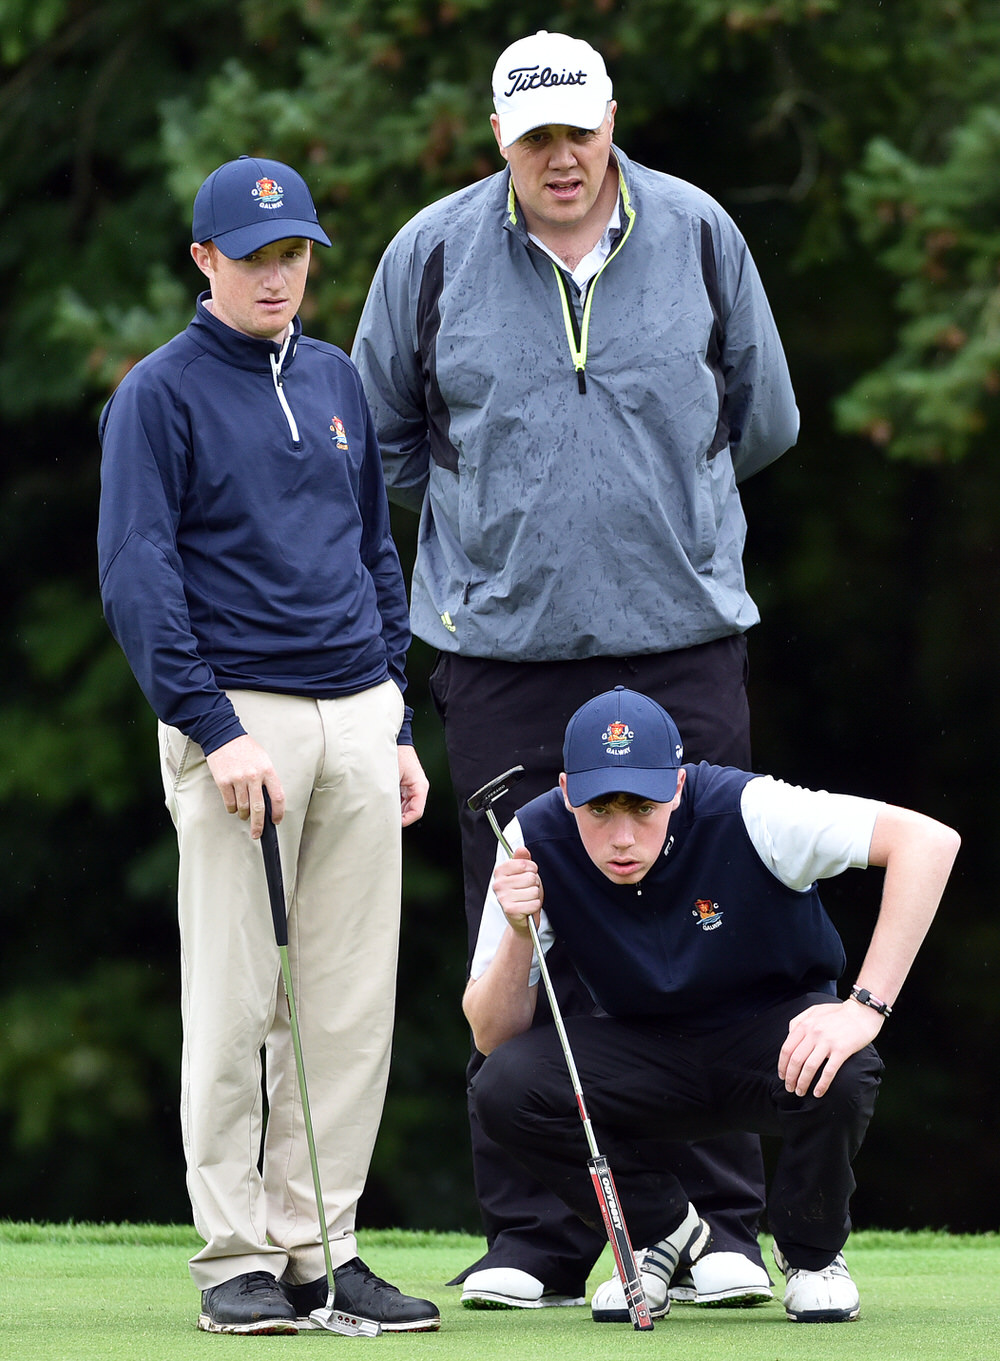 Liam Power and Ronan Mullarney (Galway) with their caddy David Mortimer on the 7th green in the AIG Barton Shield at Carton House today (20/09/2017). Picture by  Pat Cashman